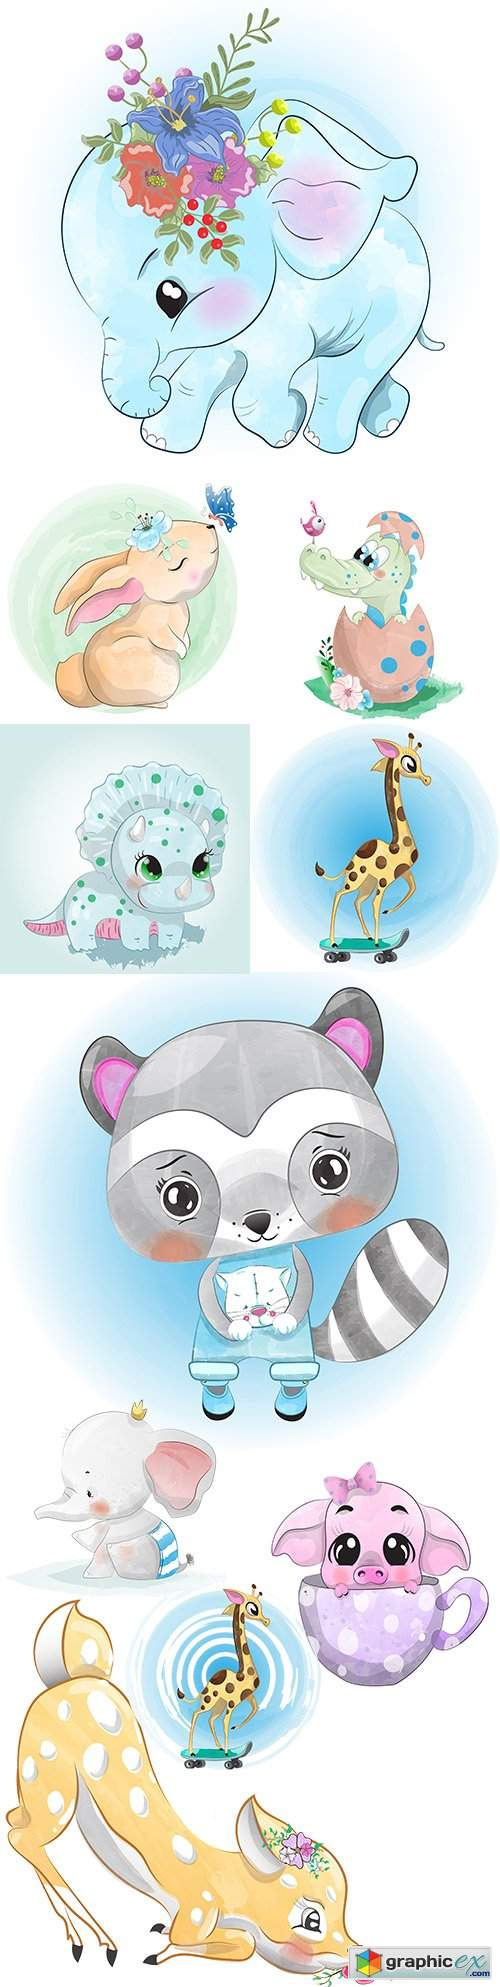 Cute baby animals watercolor drawing illustration